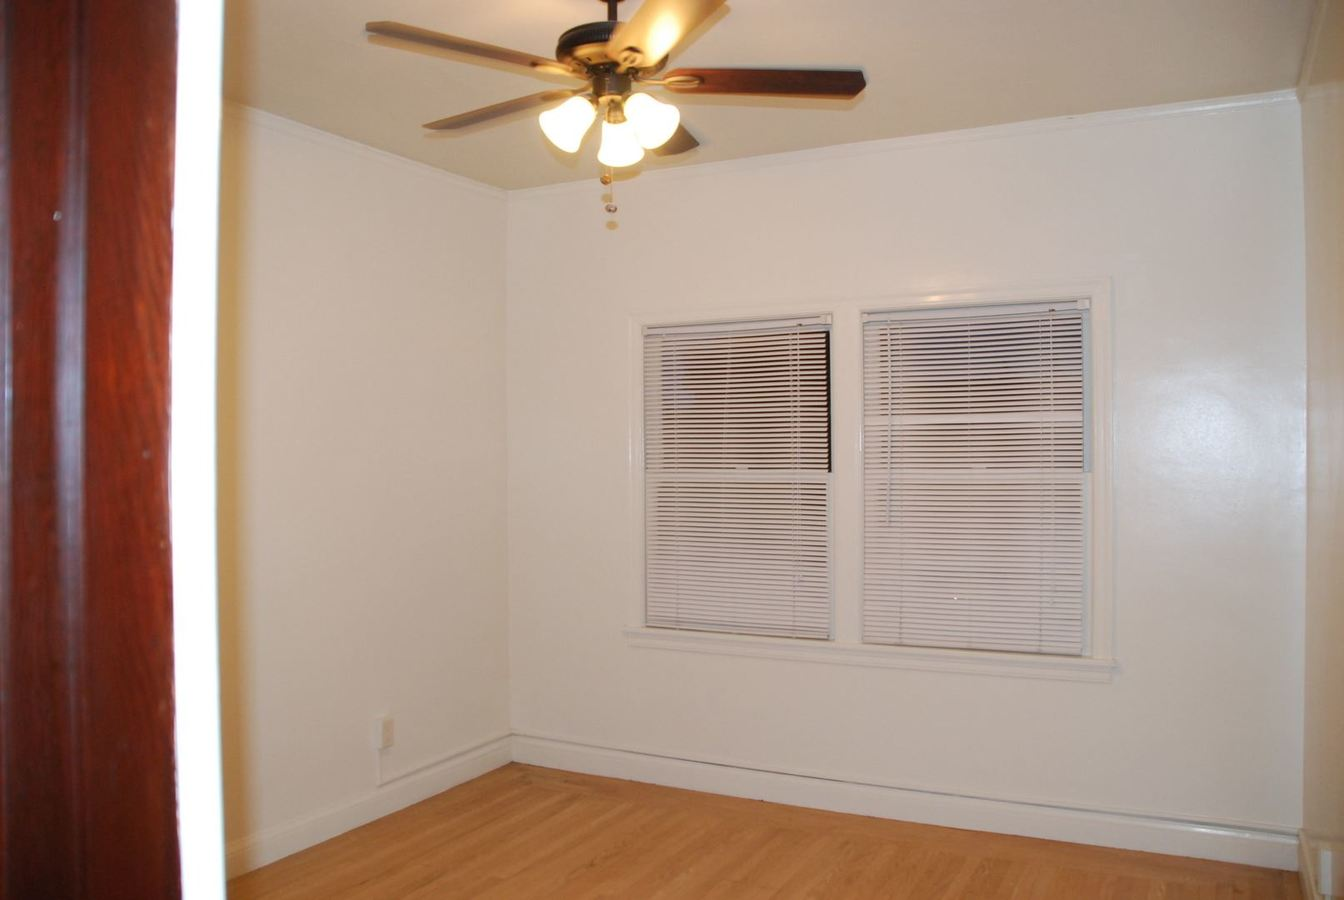 1 Bedroom 1 Bathroom Apartment for rent at 144 13th St. in Richmond, CA